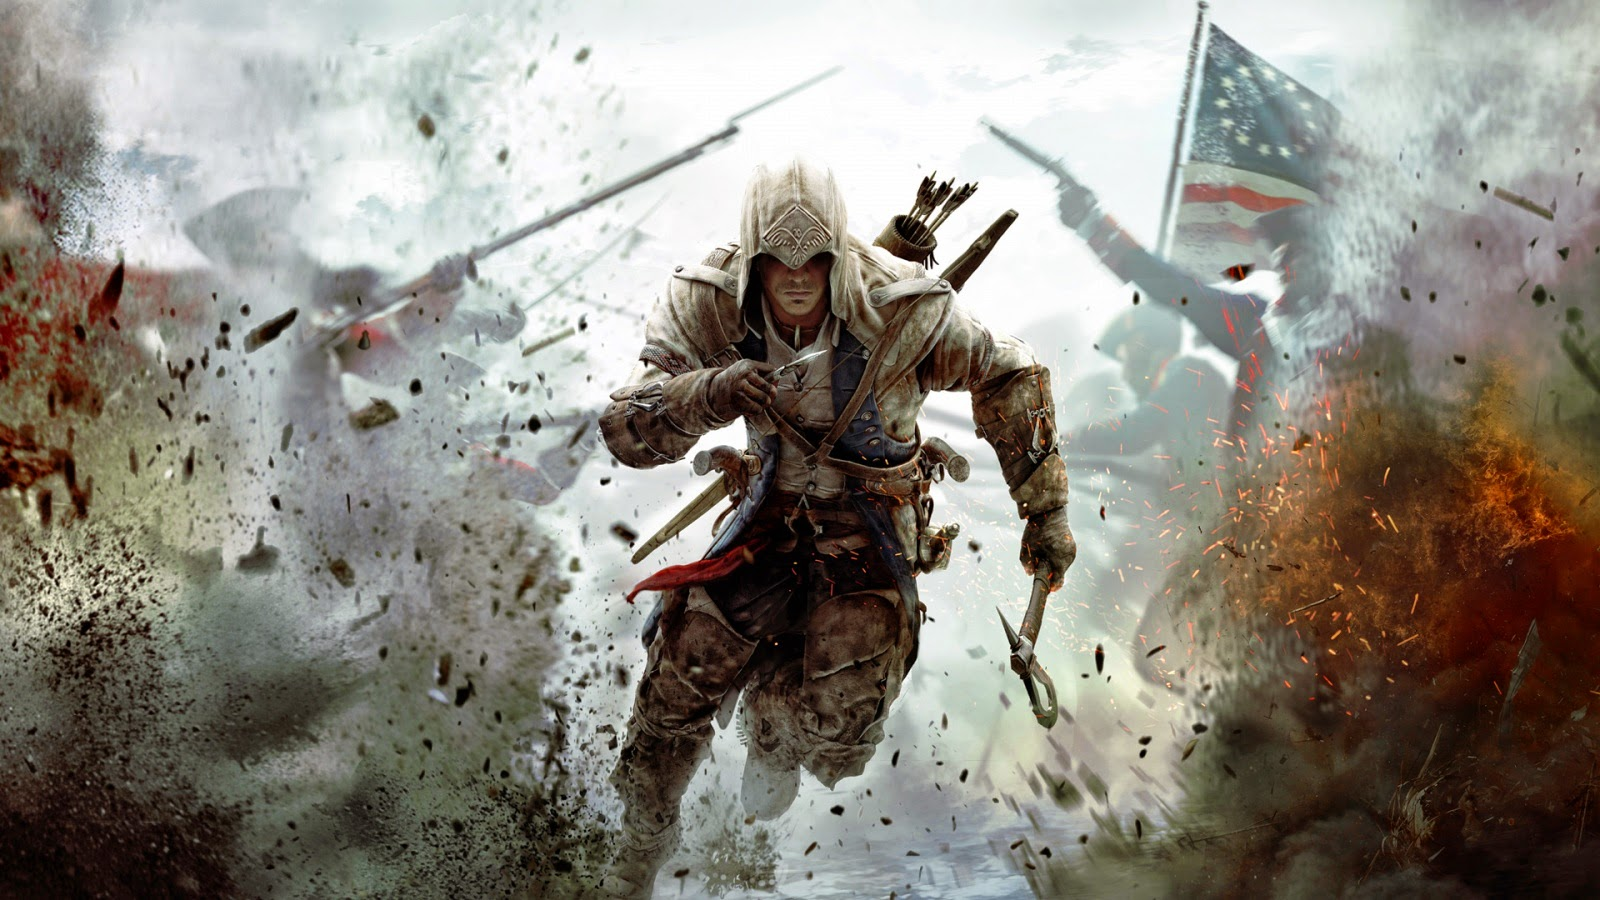 Collection of Games Full Hd Wallpapers on HDWallpapers